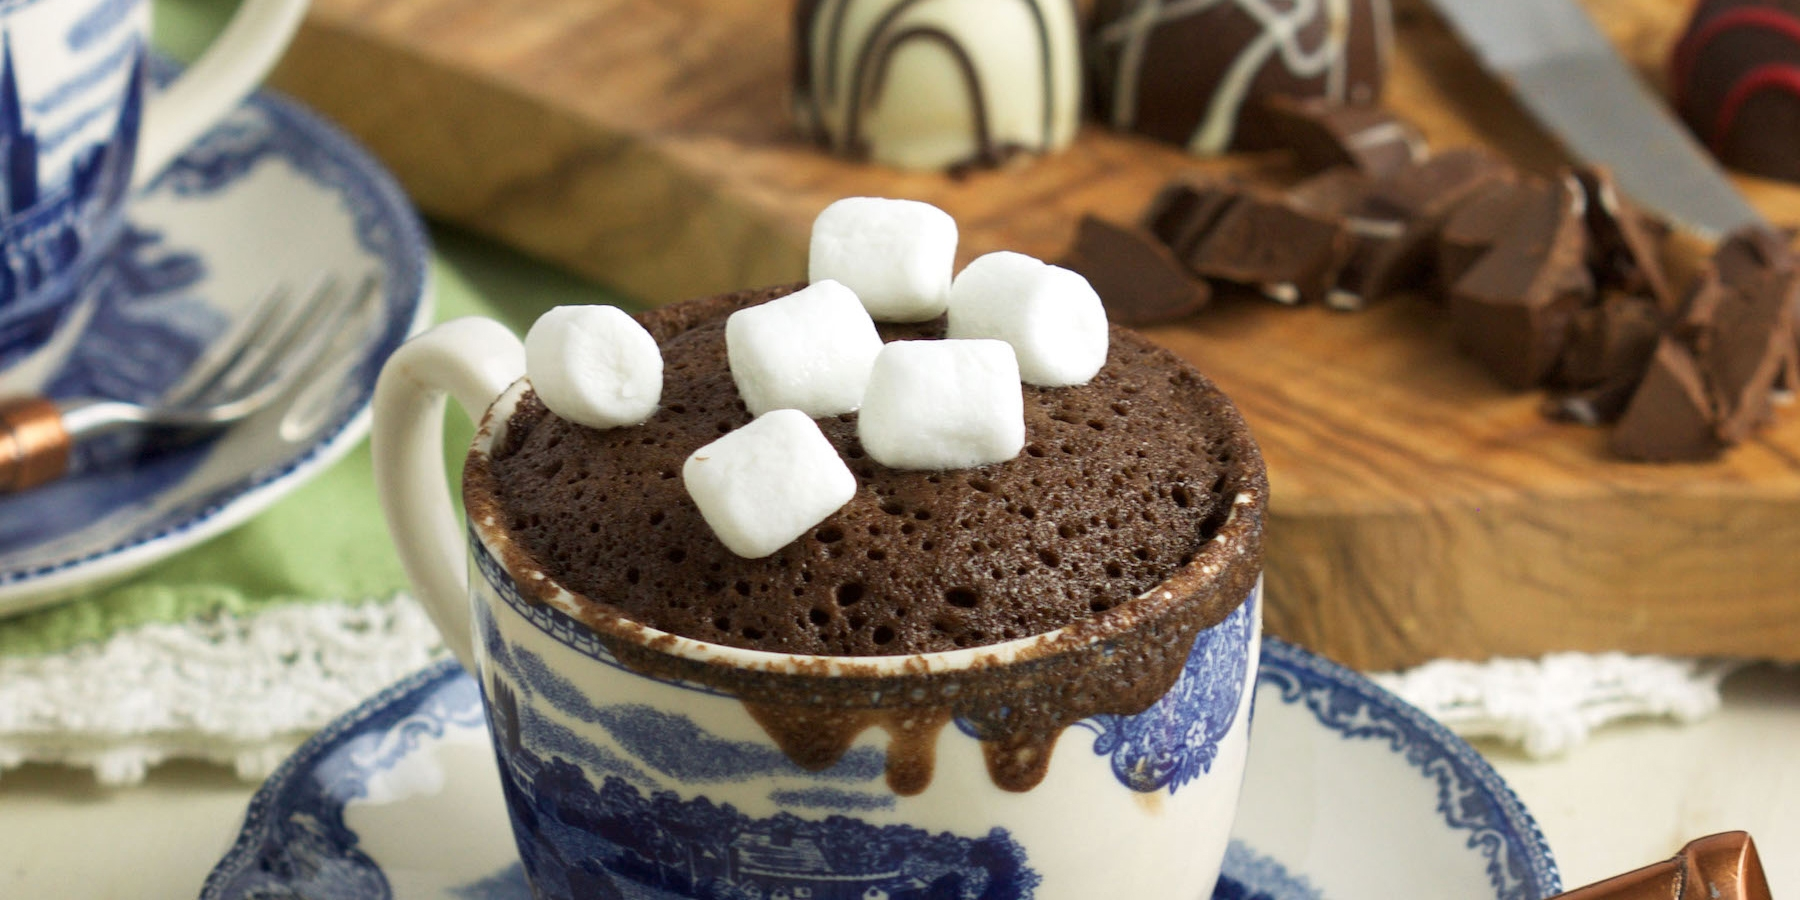 Chocolate Mug Cake with Truffles